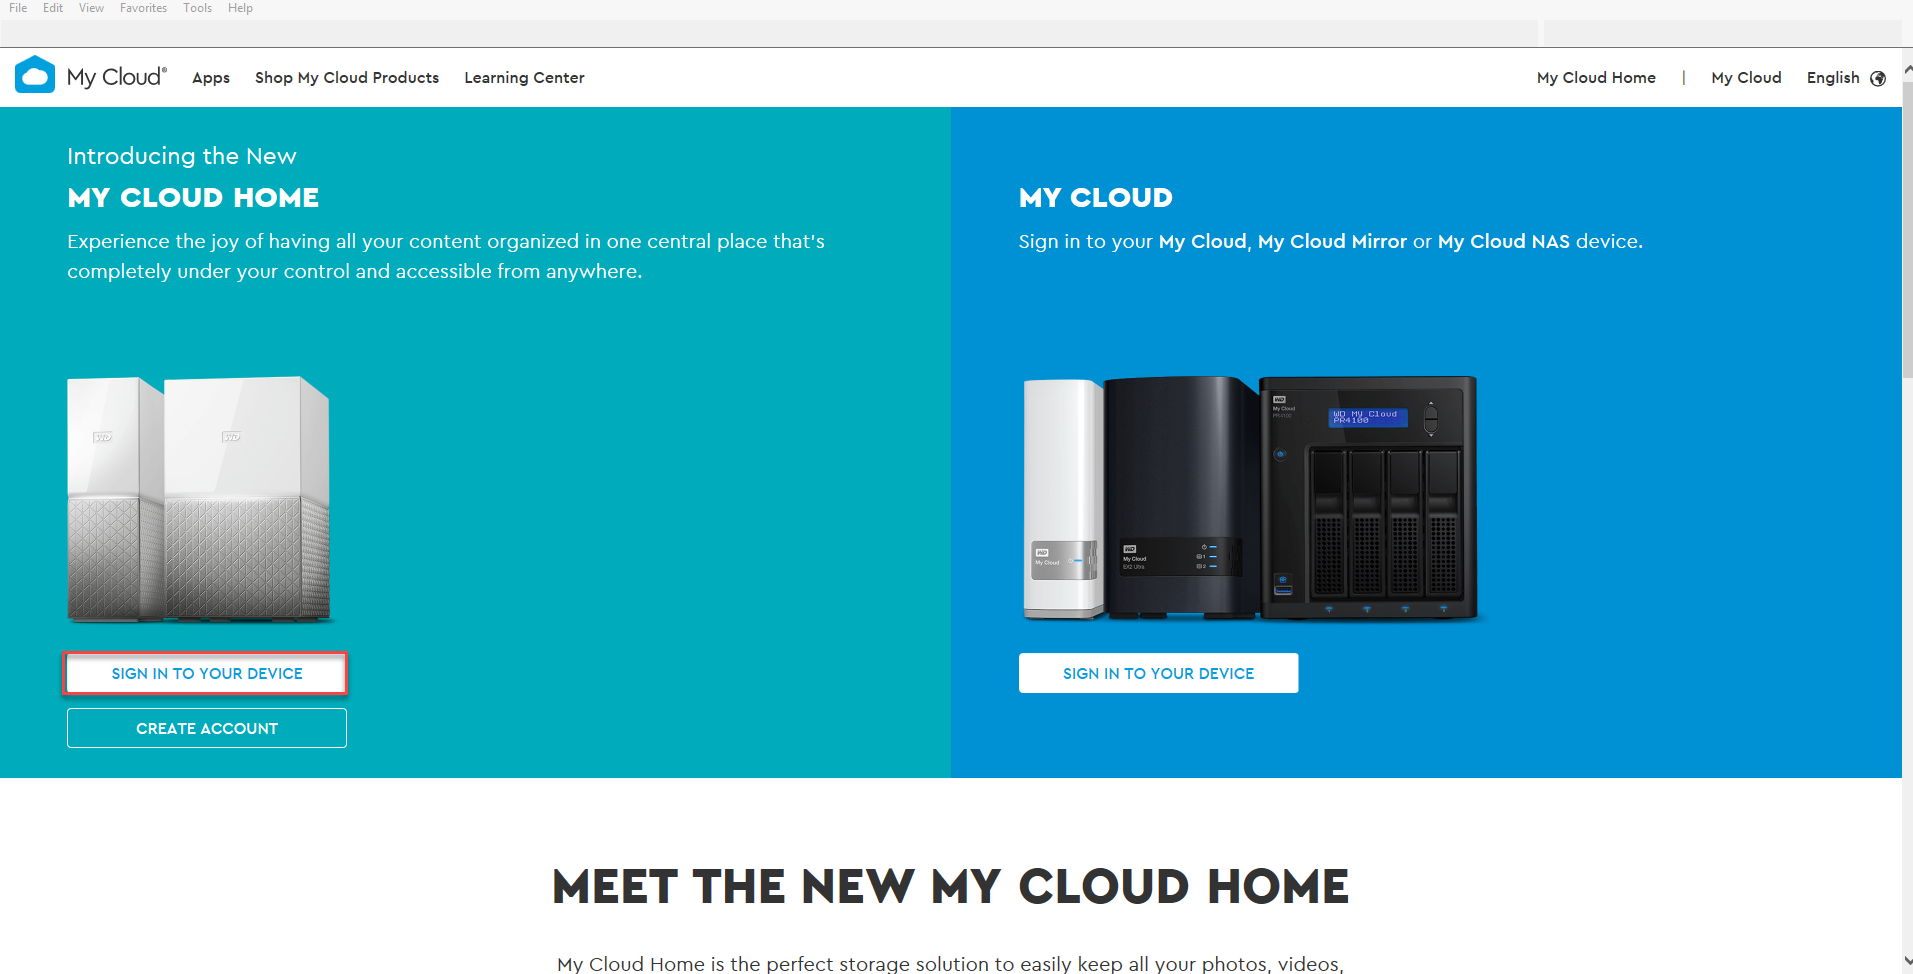 How to access a My Cloud device through MyCloud com